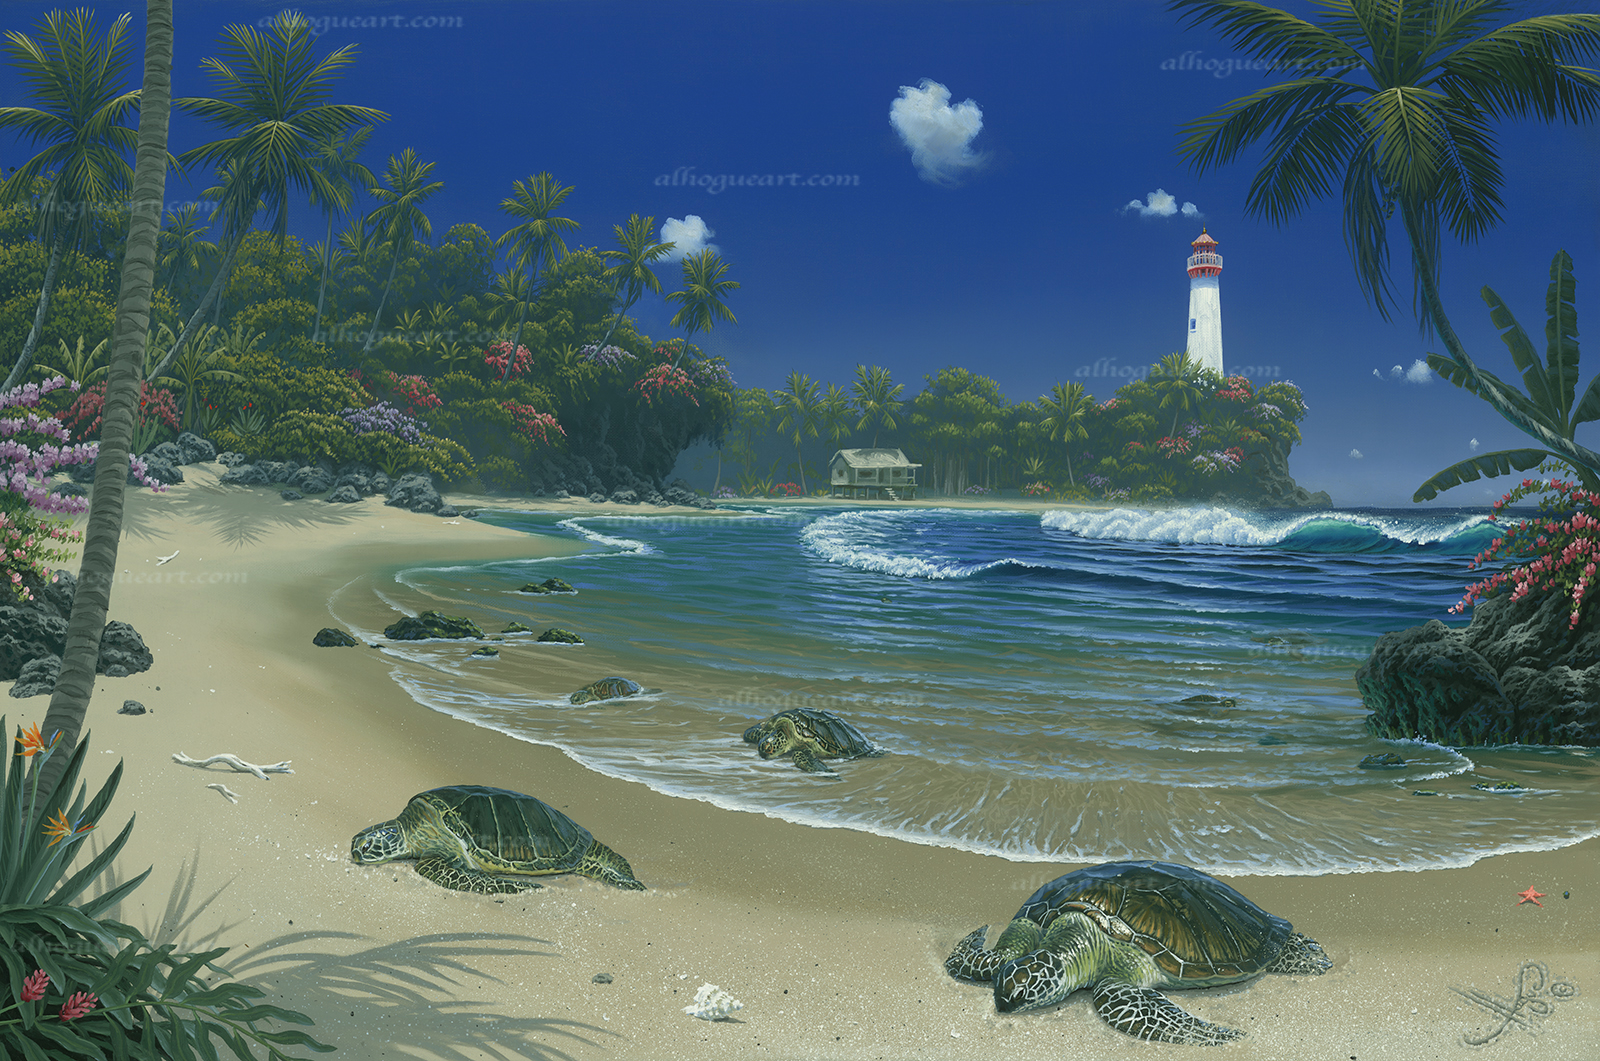 """Turtle Bay""  PP 16X24 giclee 50  SN 24X36 giclee 140  MC 27.5X44 75  Total 265"